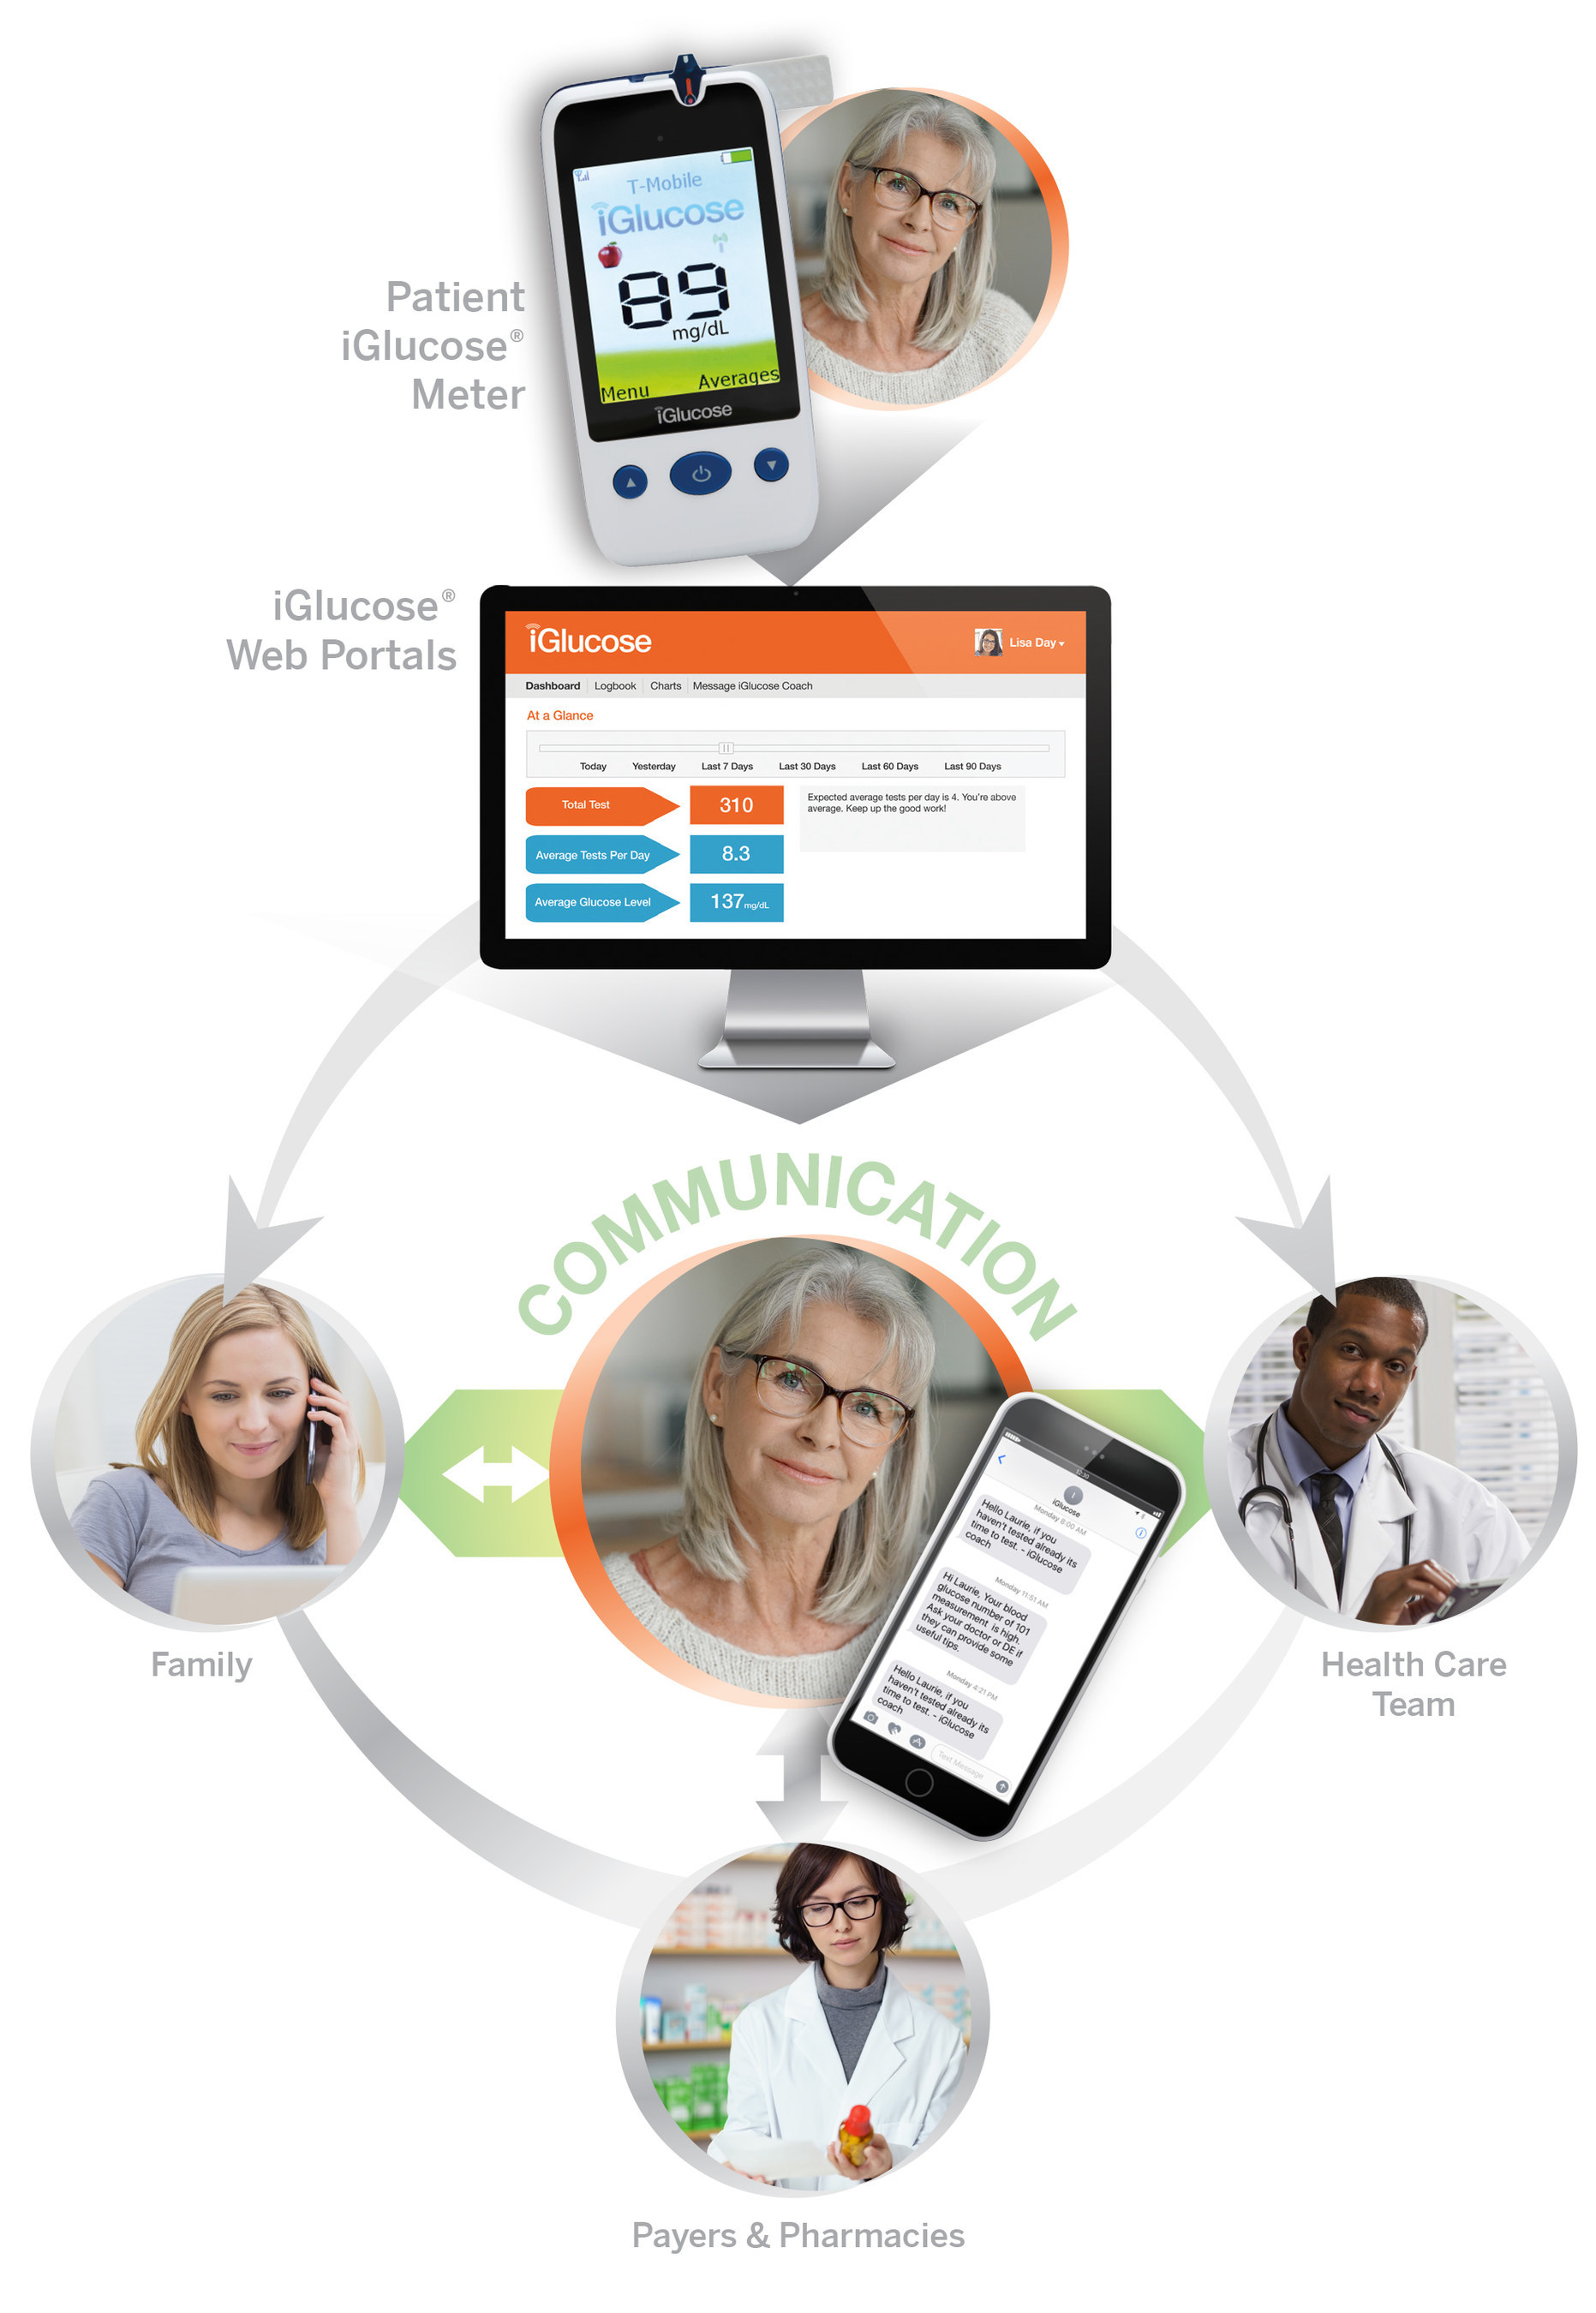 The iGlucose® Blood Glucose Monitoring System offers automatic transmission of diabetes information to a cloud-based personalized web portal, while facilitating simple, real-time mobile communication between the person with diabetes and the family members, friends and healthcare professionals who are part of his or her designated Circle of Care.